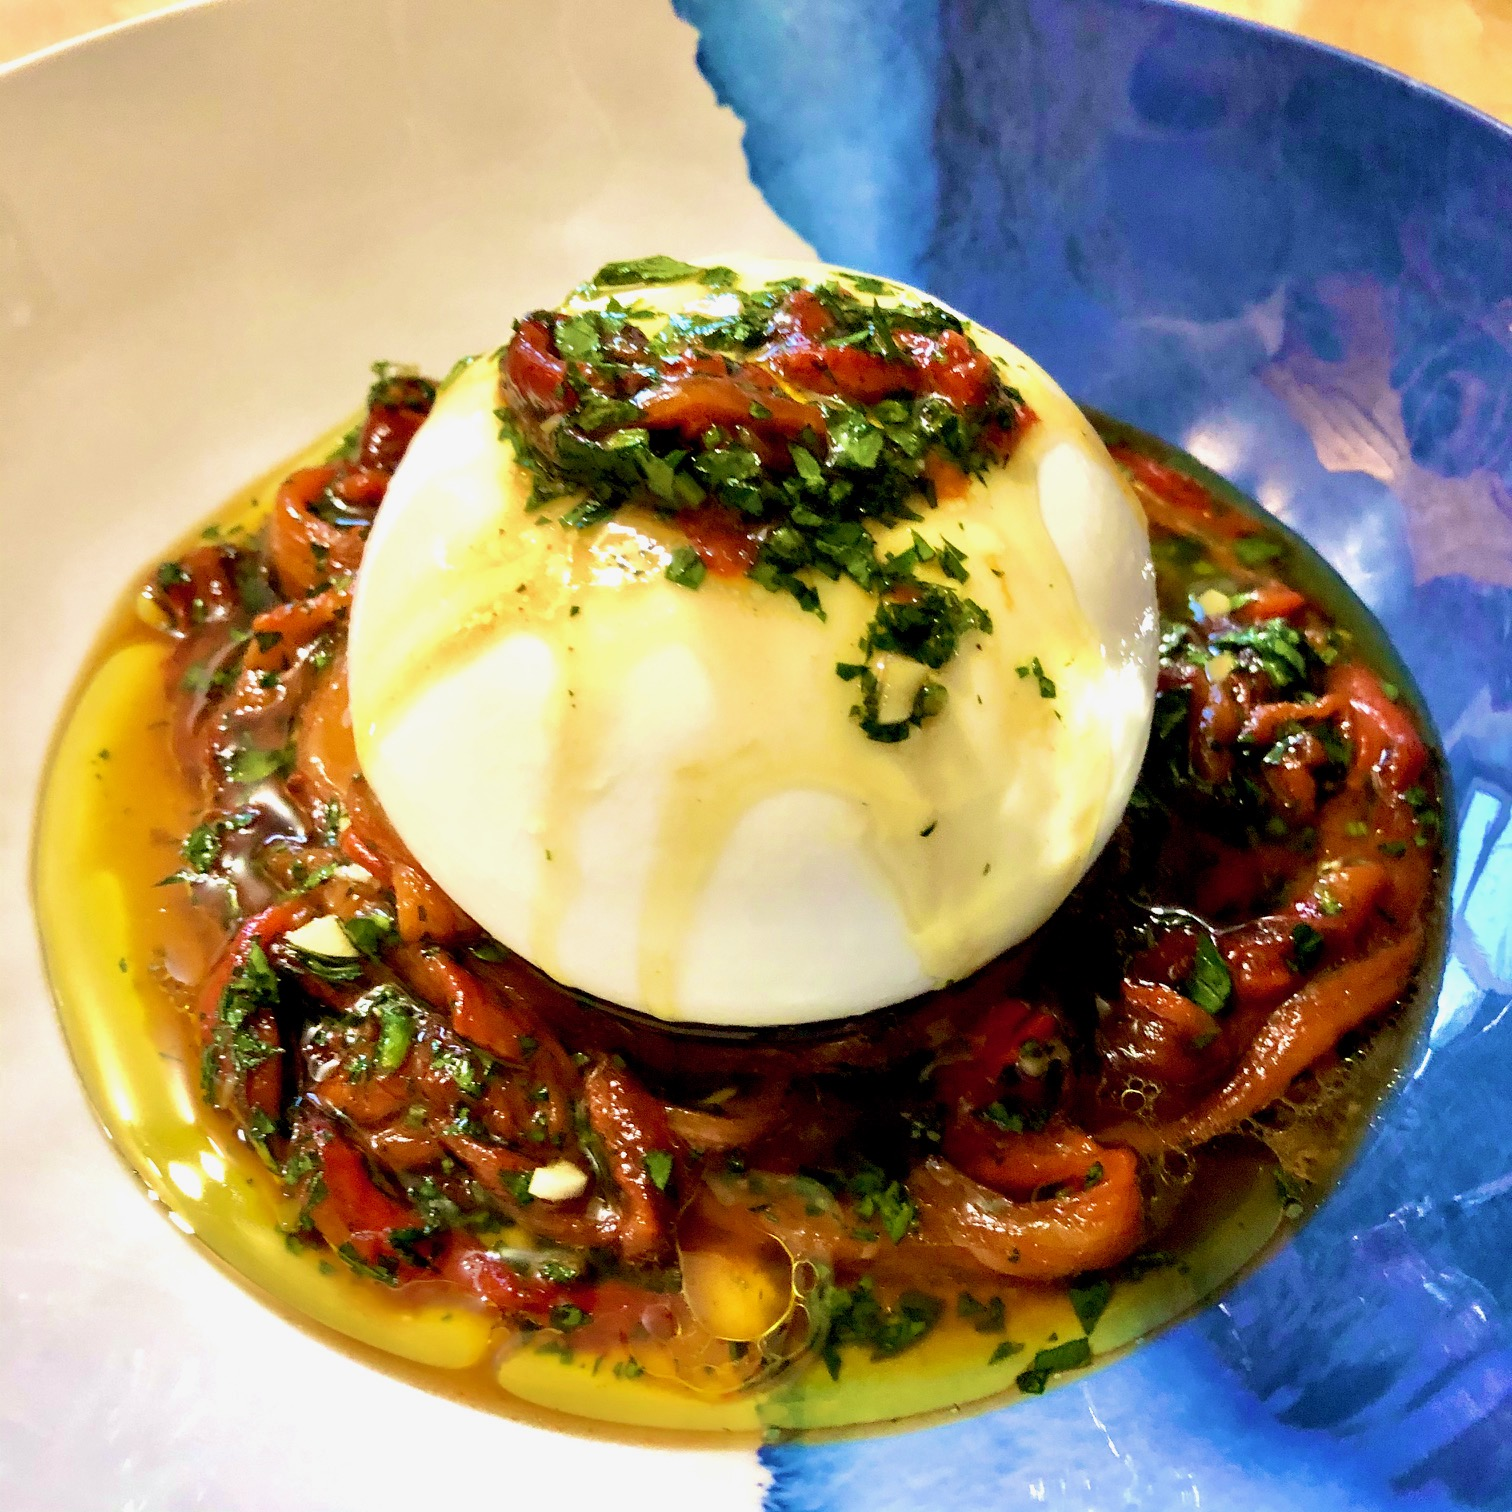 Day 38: Burrata with Marinated Roasted Peppers